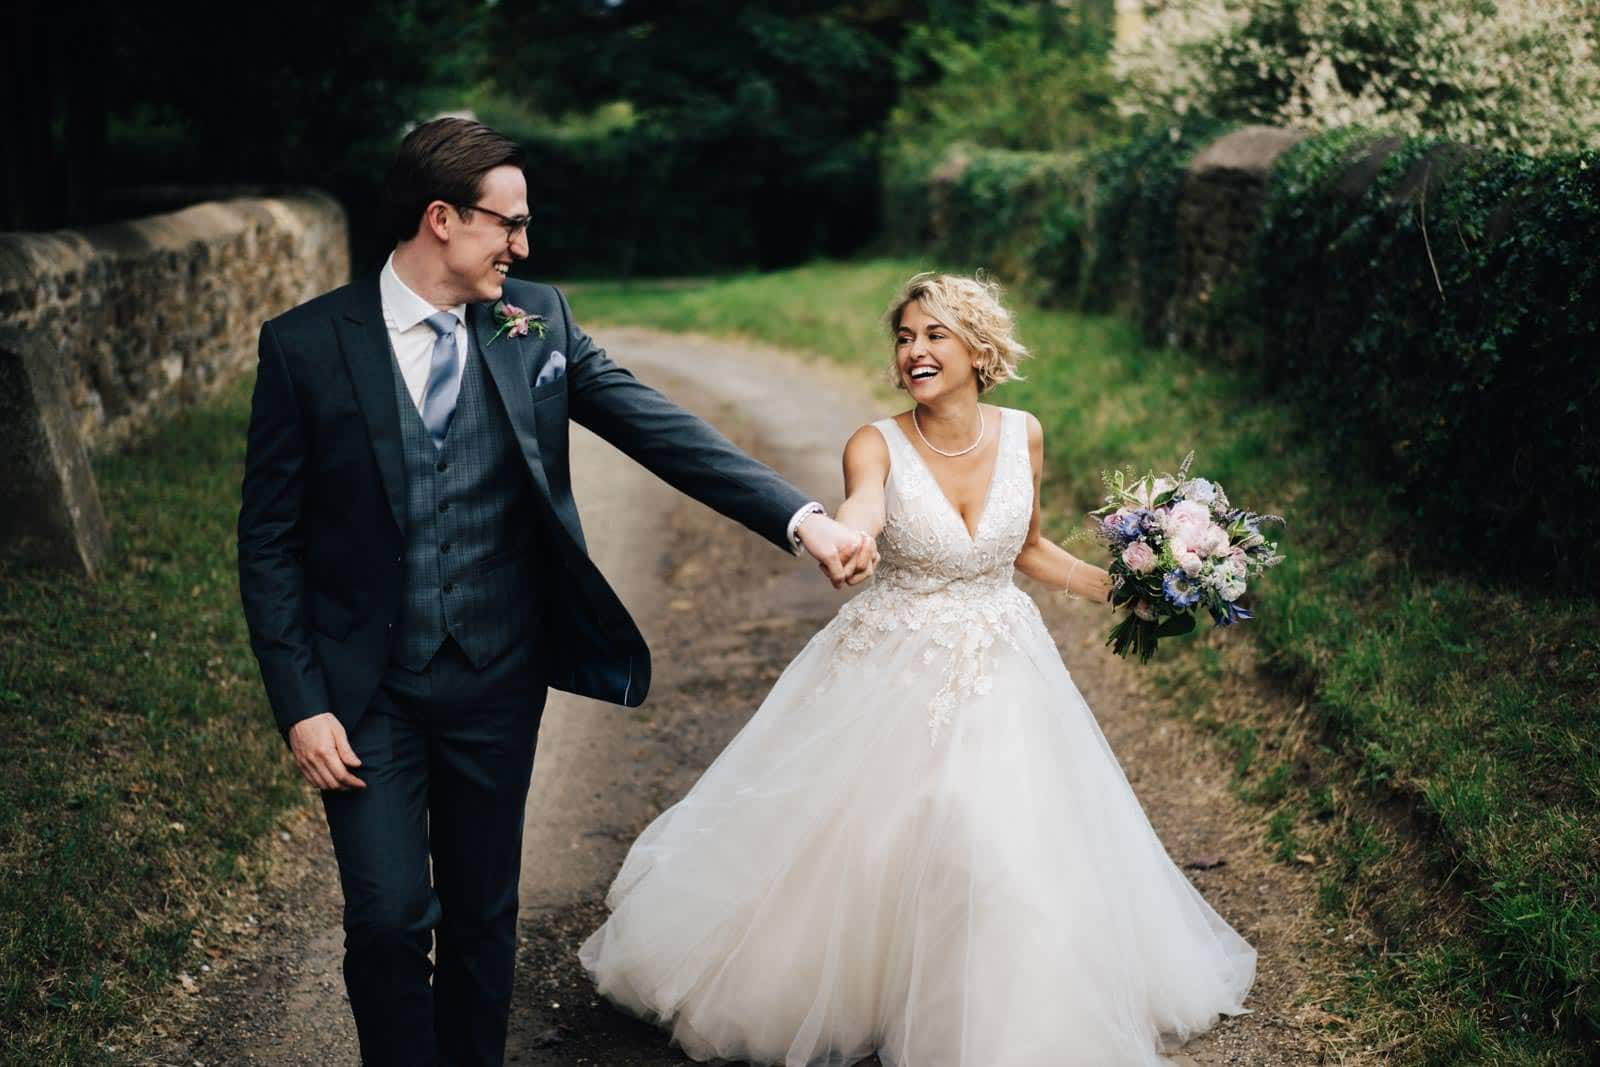 warwickshire wedding photographer, couple looking beautiful as they walk together